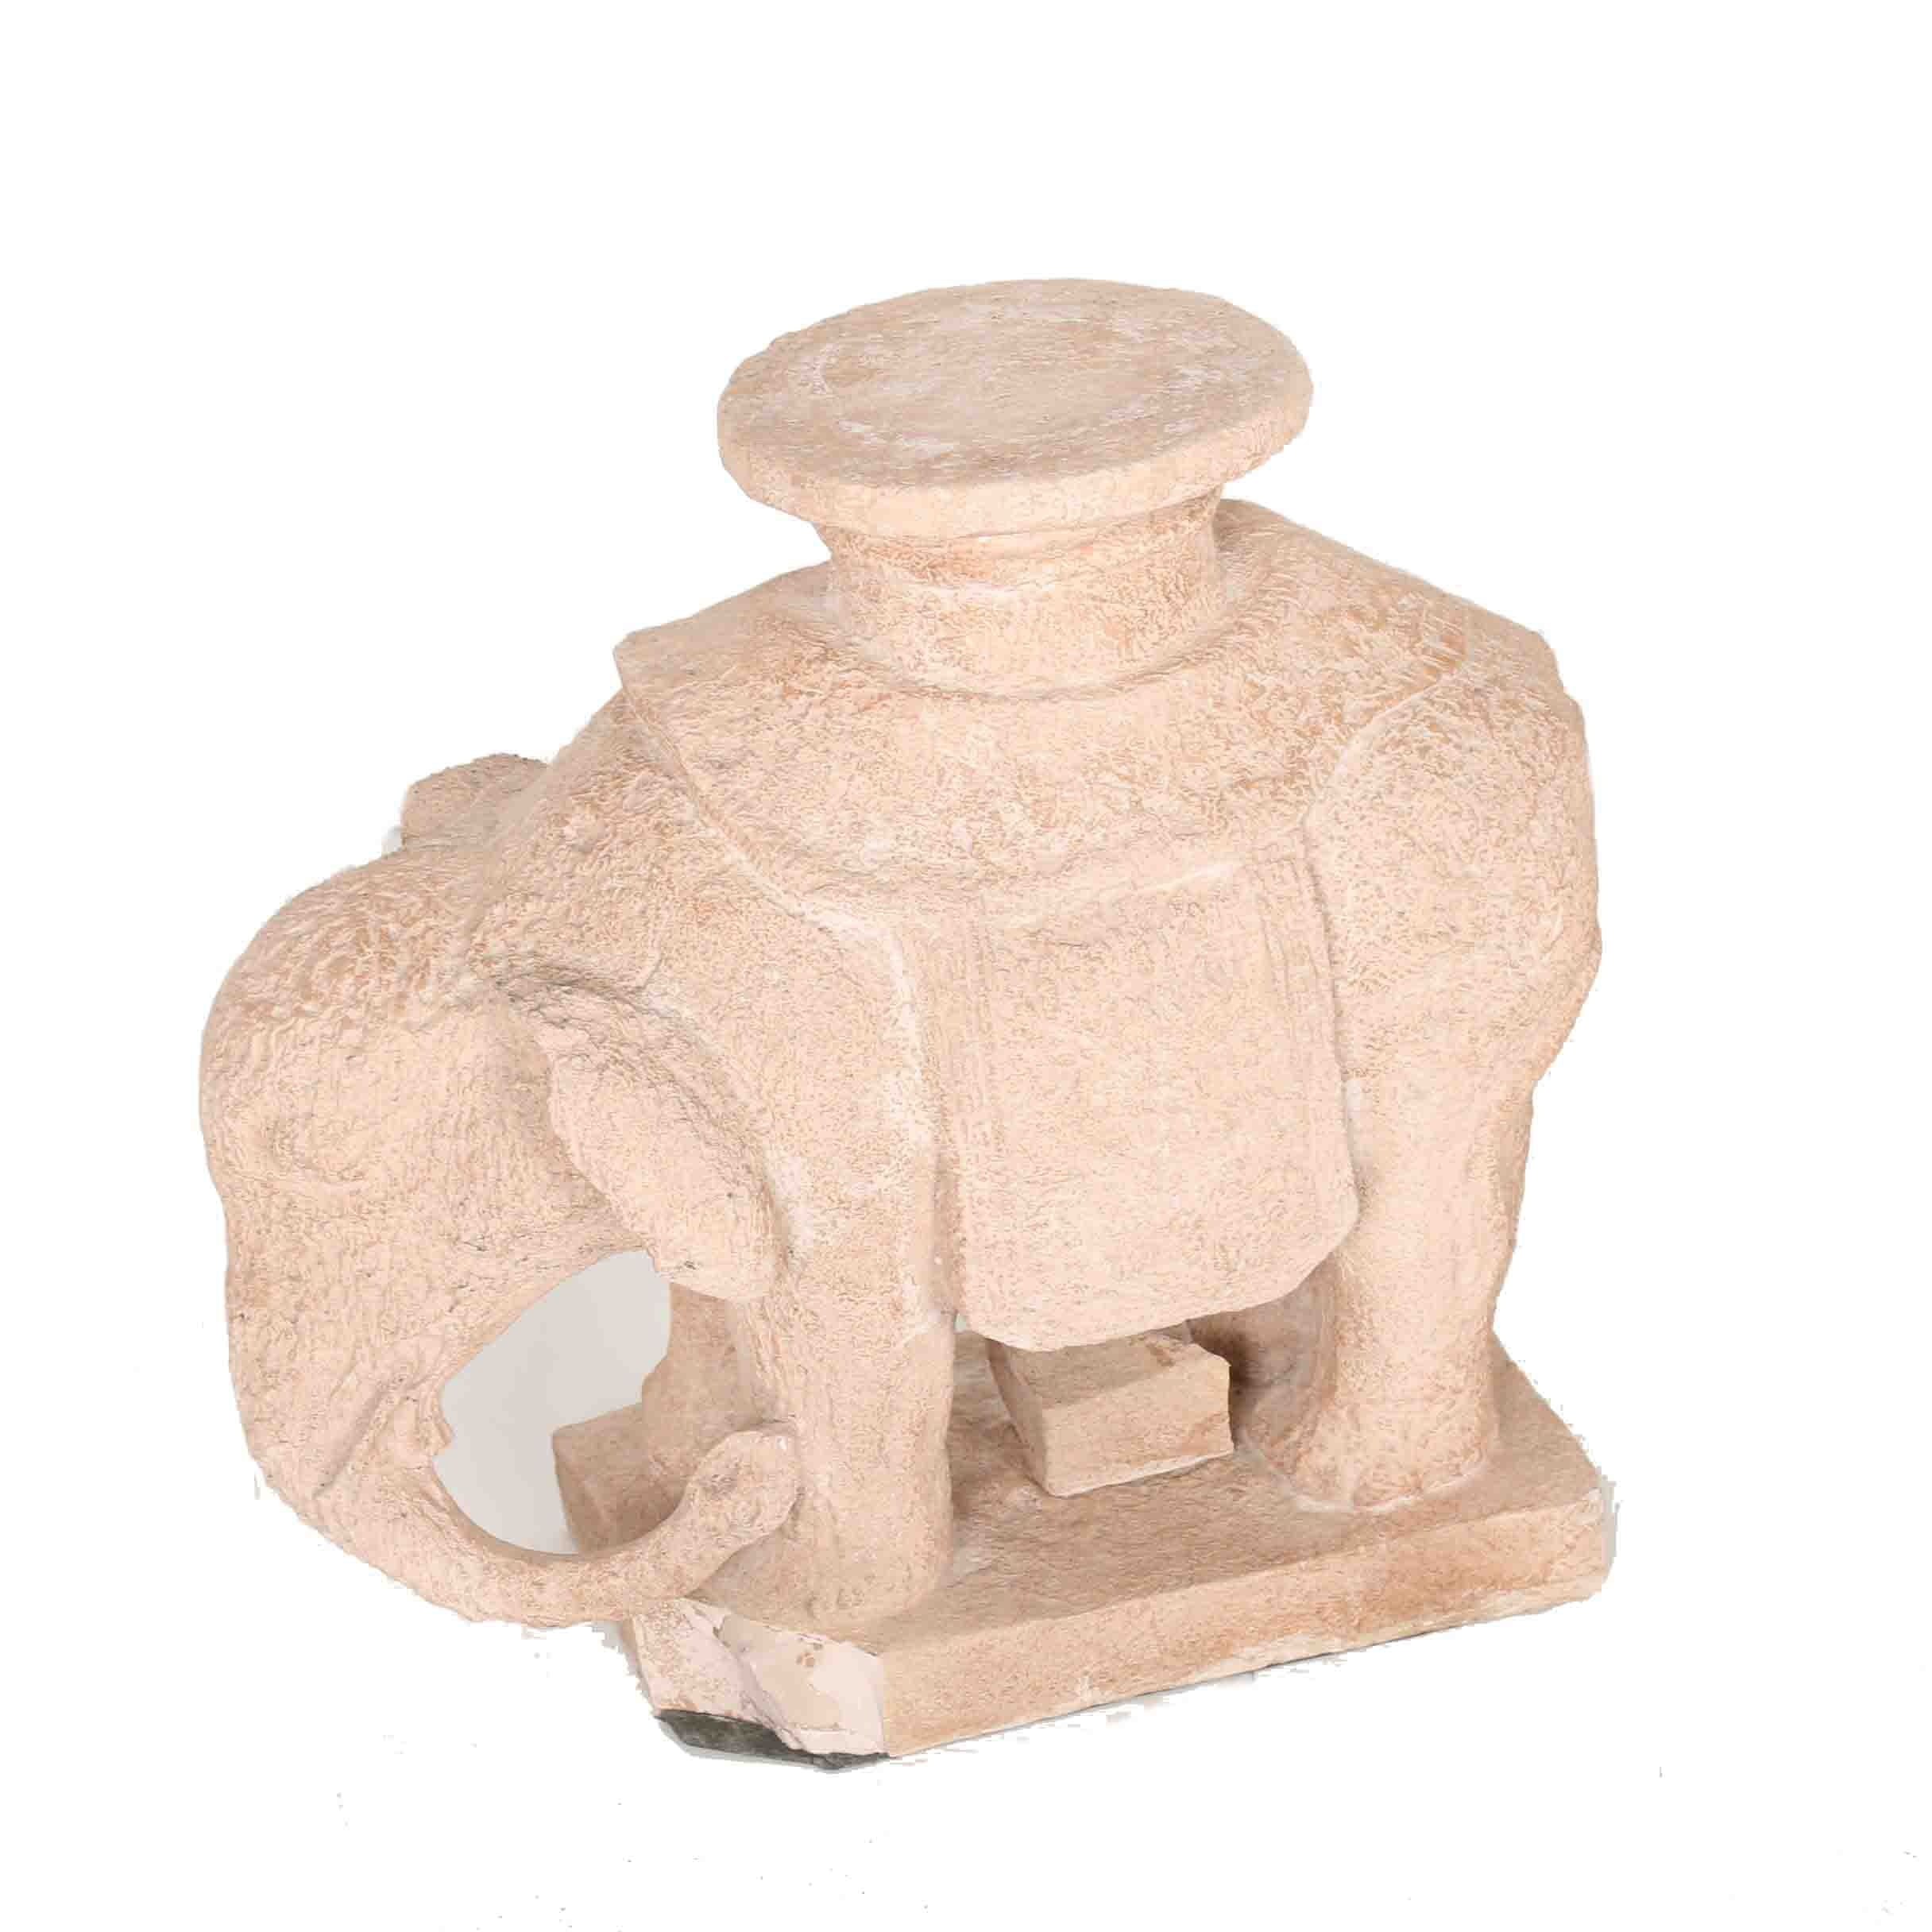 Austin Prod. Inc. Ceramic Reproduction Elephant Sculpture